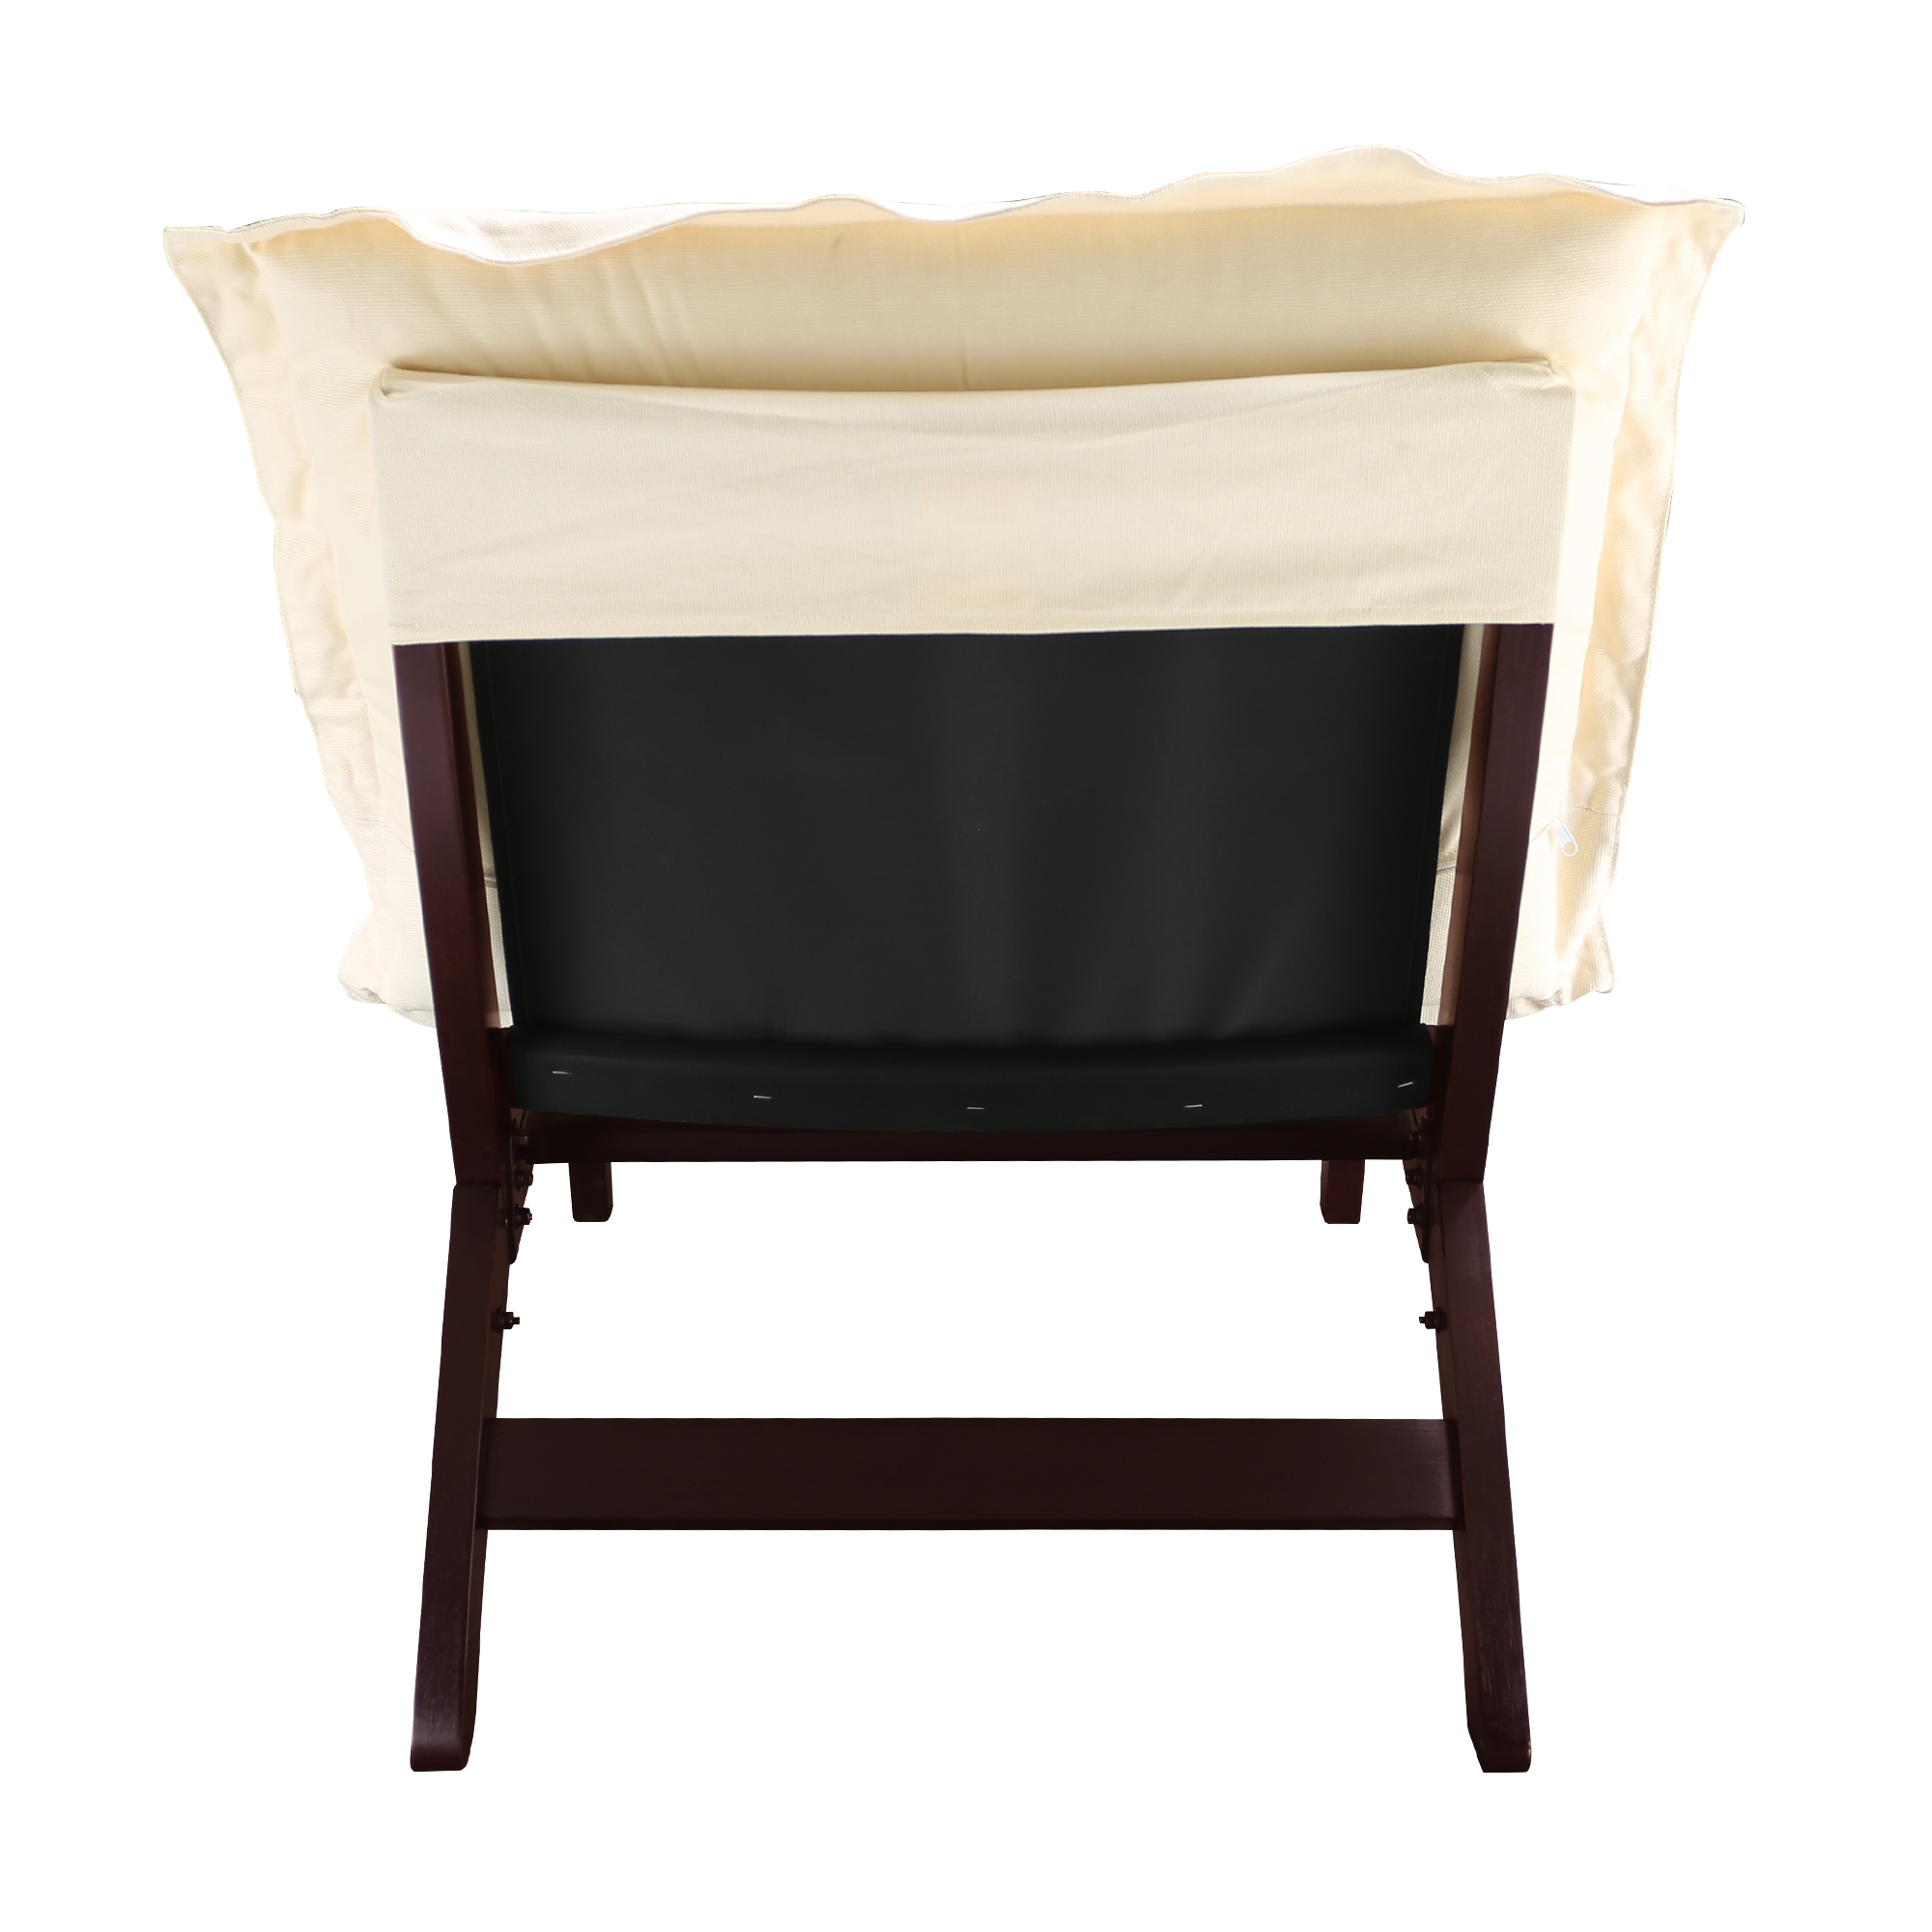 Madison Folding Lounger Chair With Concealed Compartment